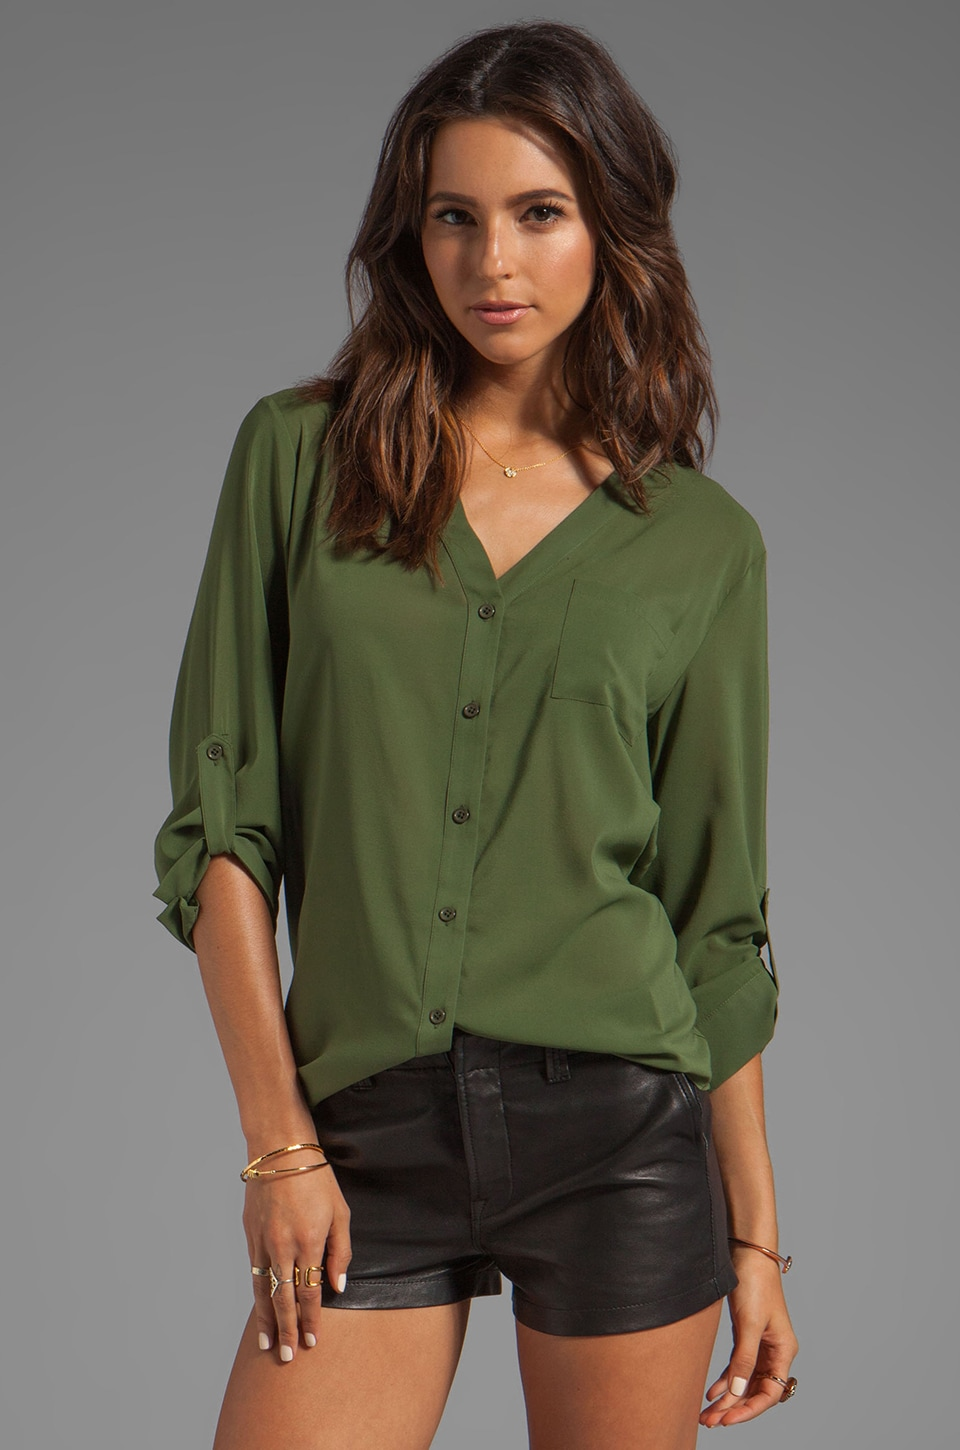 Alice + Olivia Colby Rolled Sleeve Draped Button Down Top in Deep Ivy